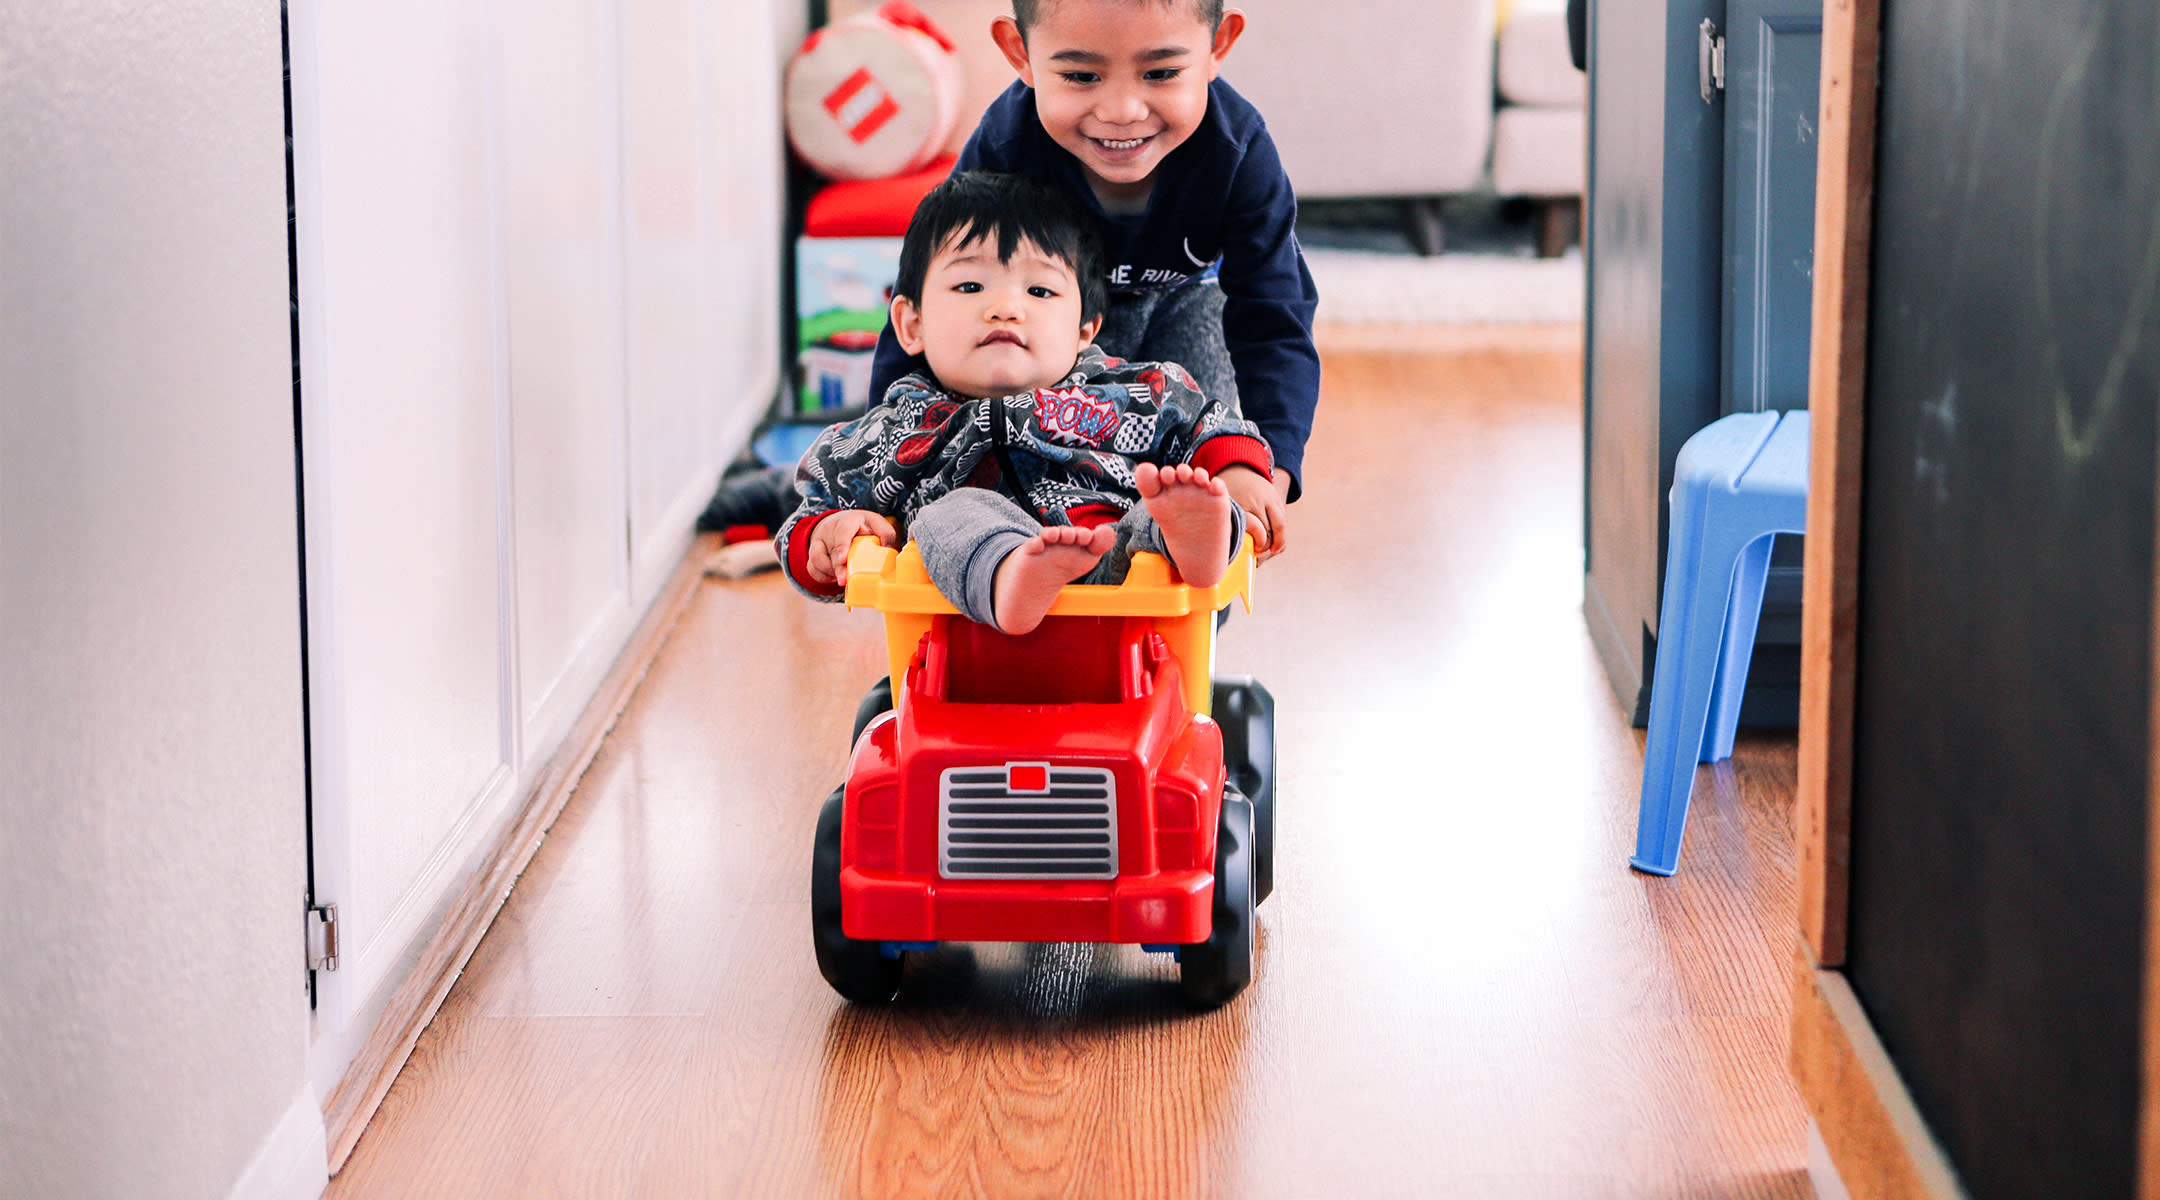 two happy friends, one pushing the other in toy fire truck